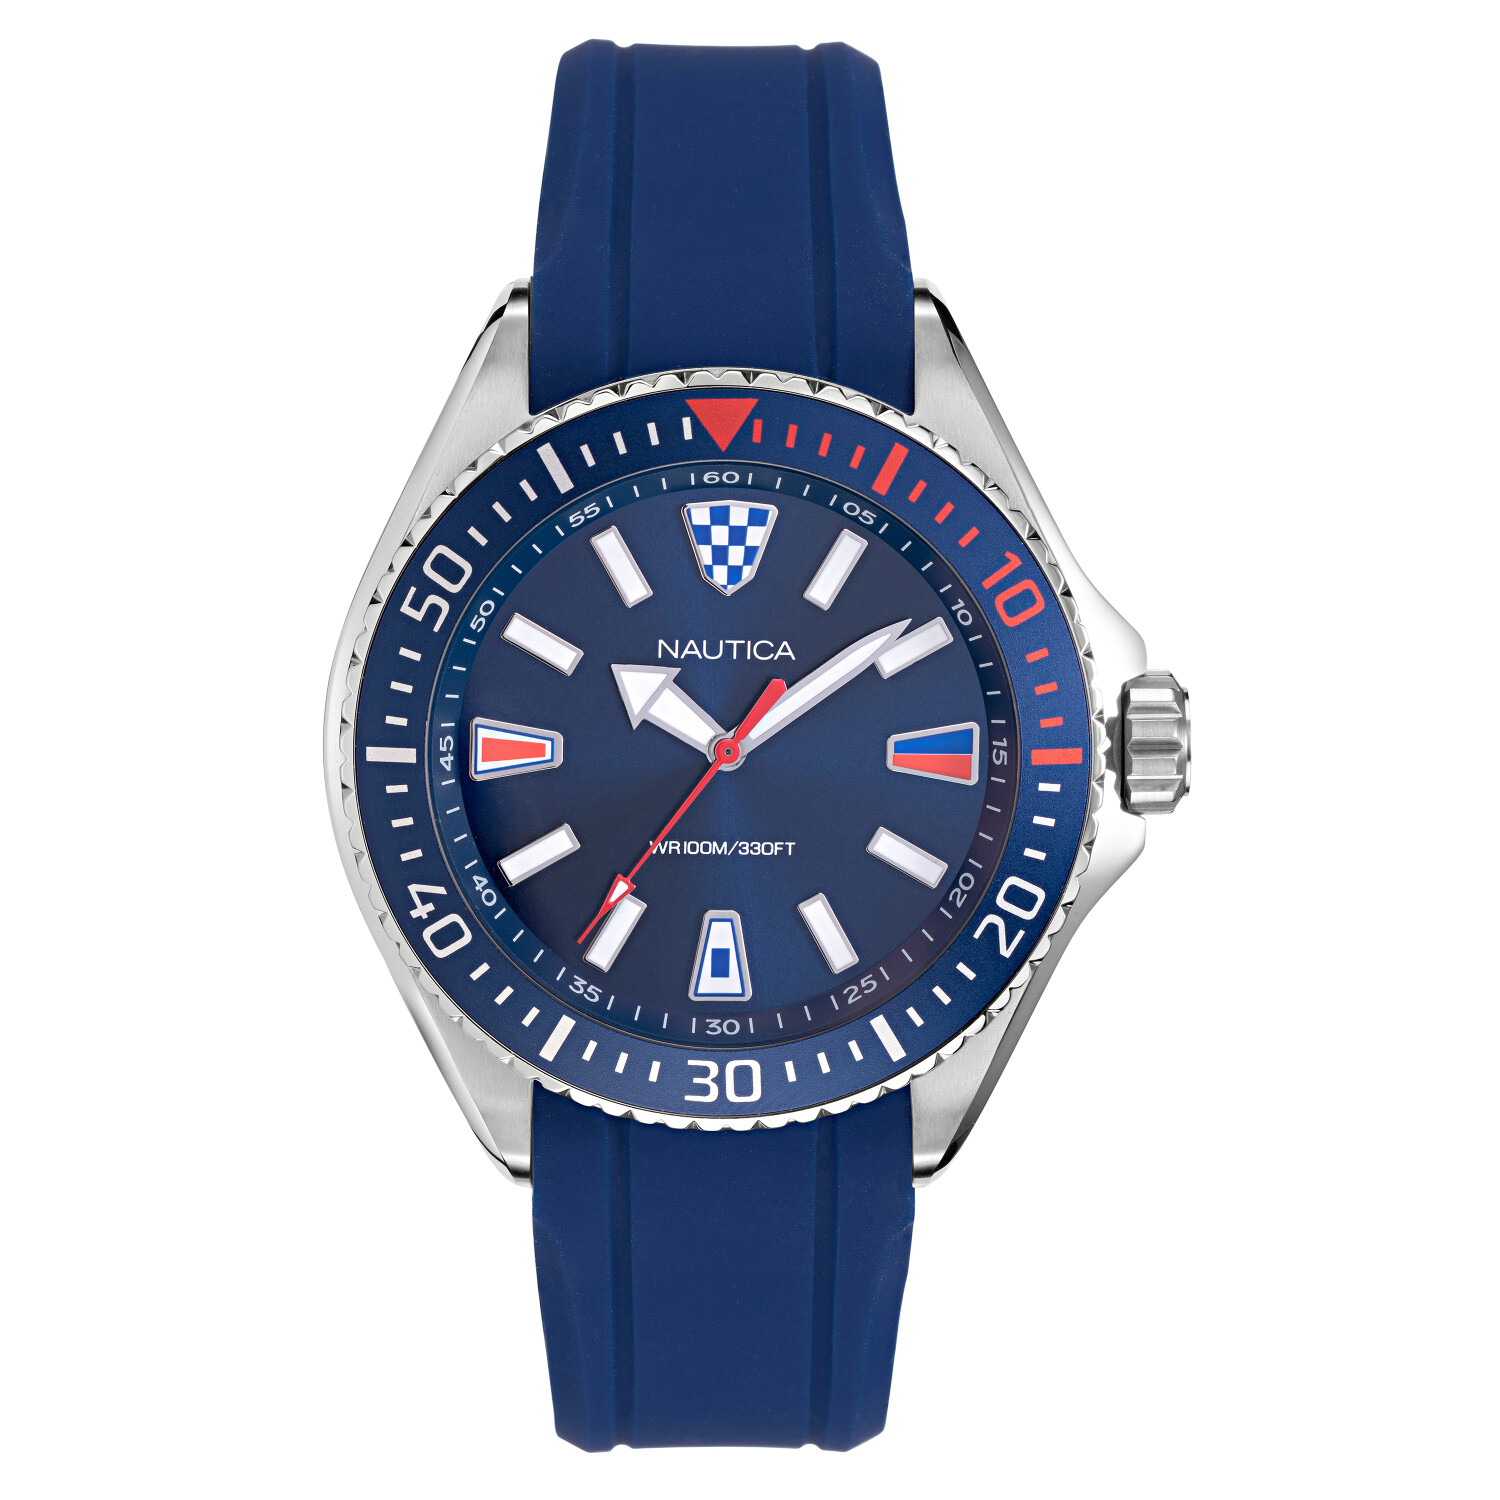 Nautica Watch NAPCPS901 Crandon Park Beach, Analog, Water Resistant, Silicone Band, Adjustable Buckle, Snap Down Crown, Blue